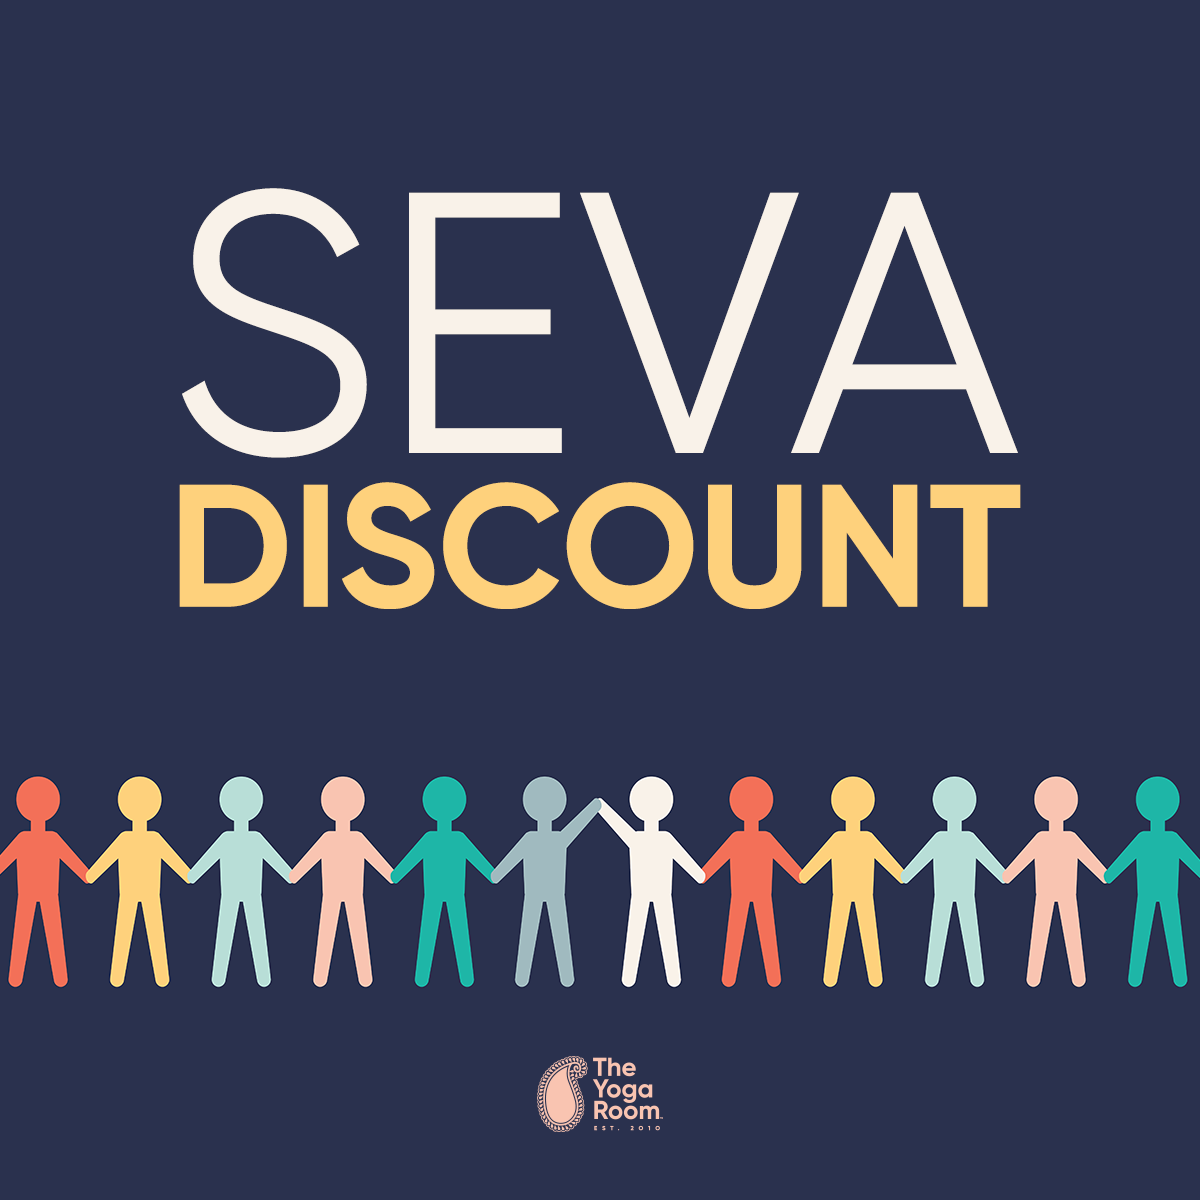 Seva Disount Graphic.png